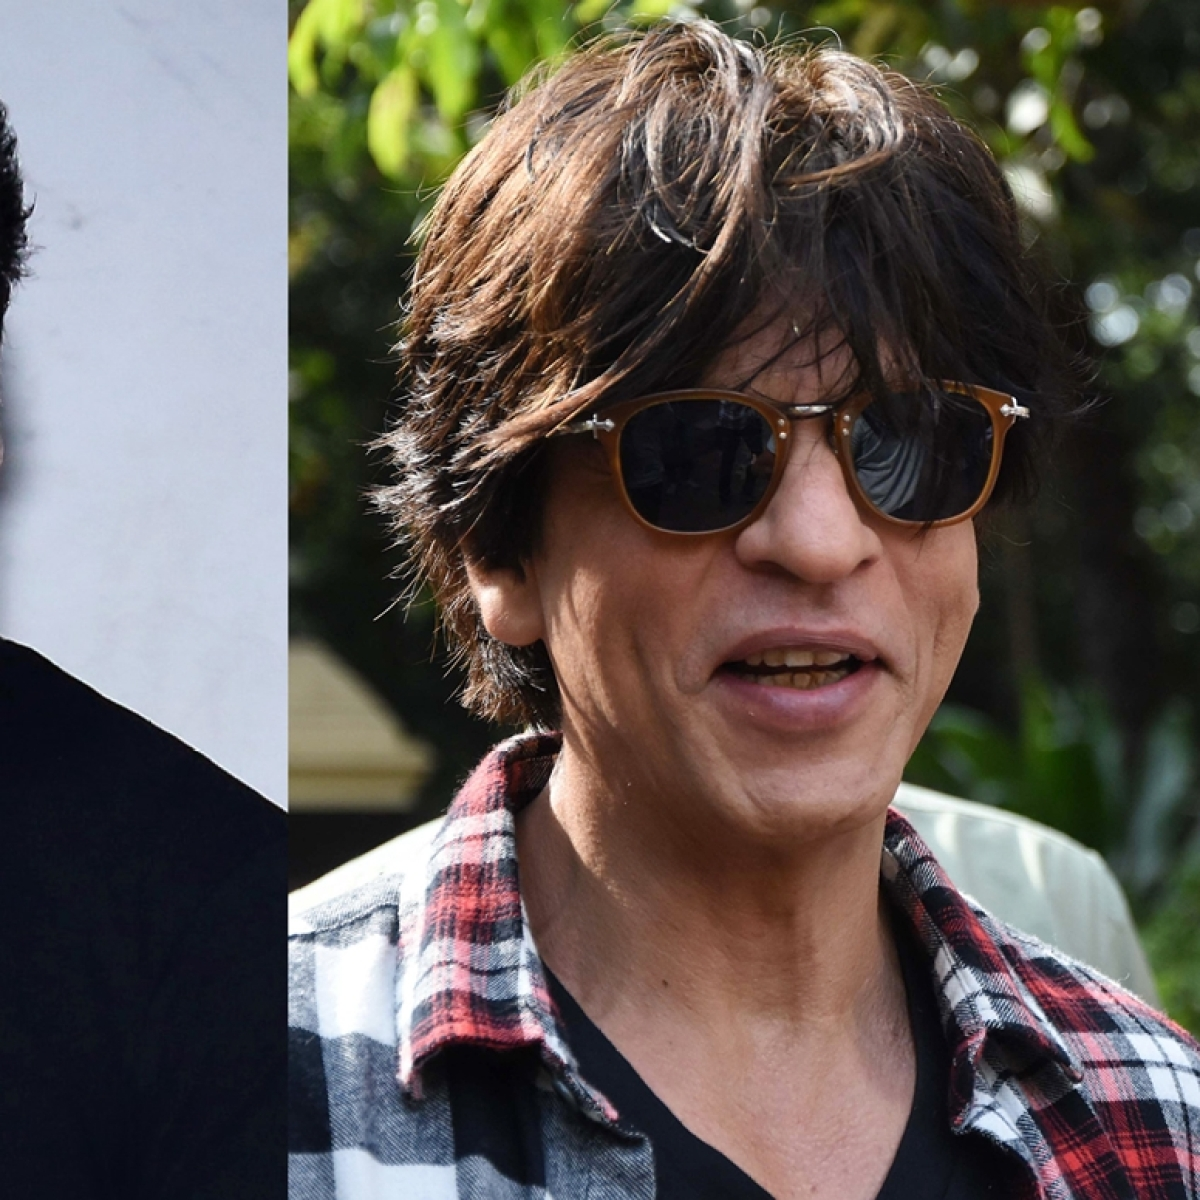 Epic Crossover: Salman Khan, Shah Rukh Khan to feature in each other's films 'Tiger 3' and 'Pathan'